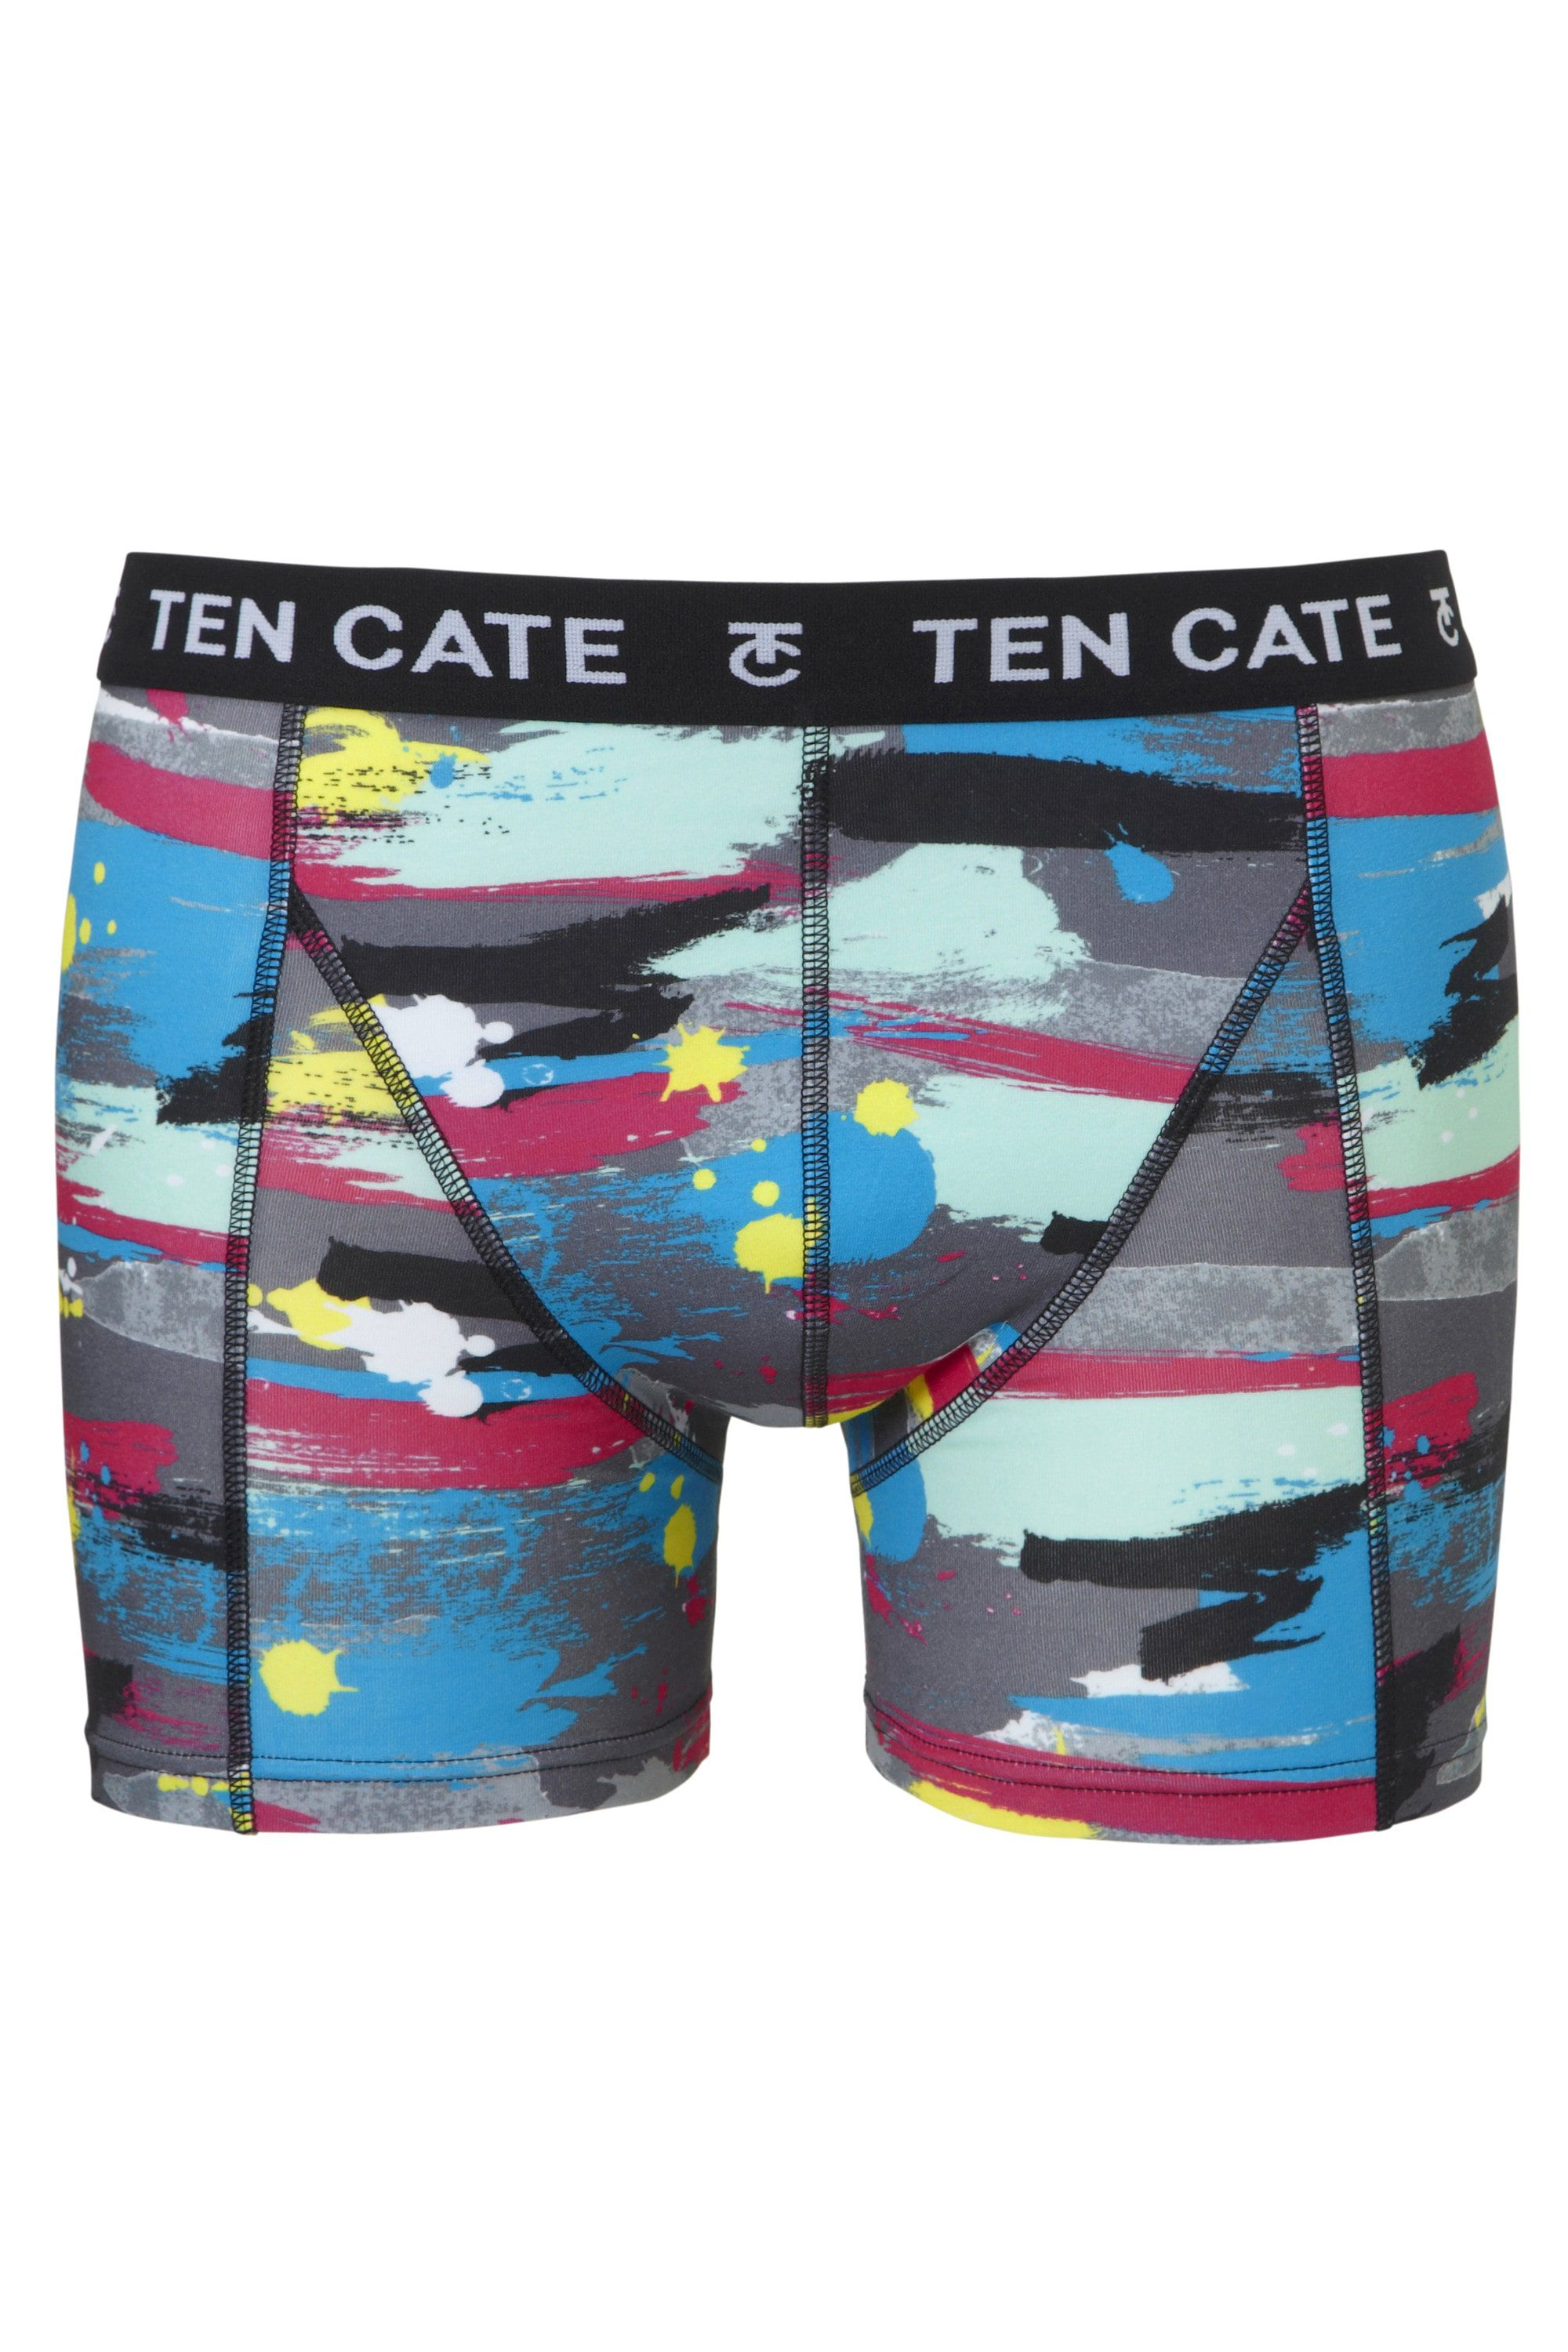 Ten Cate Men Printed Shorts 3224 Paint Antra